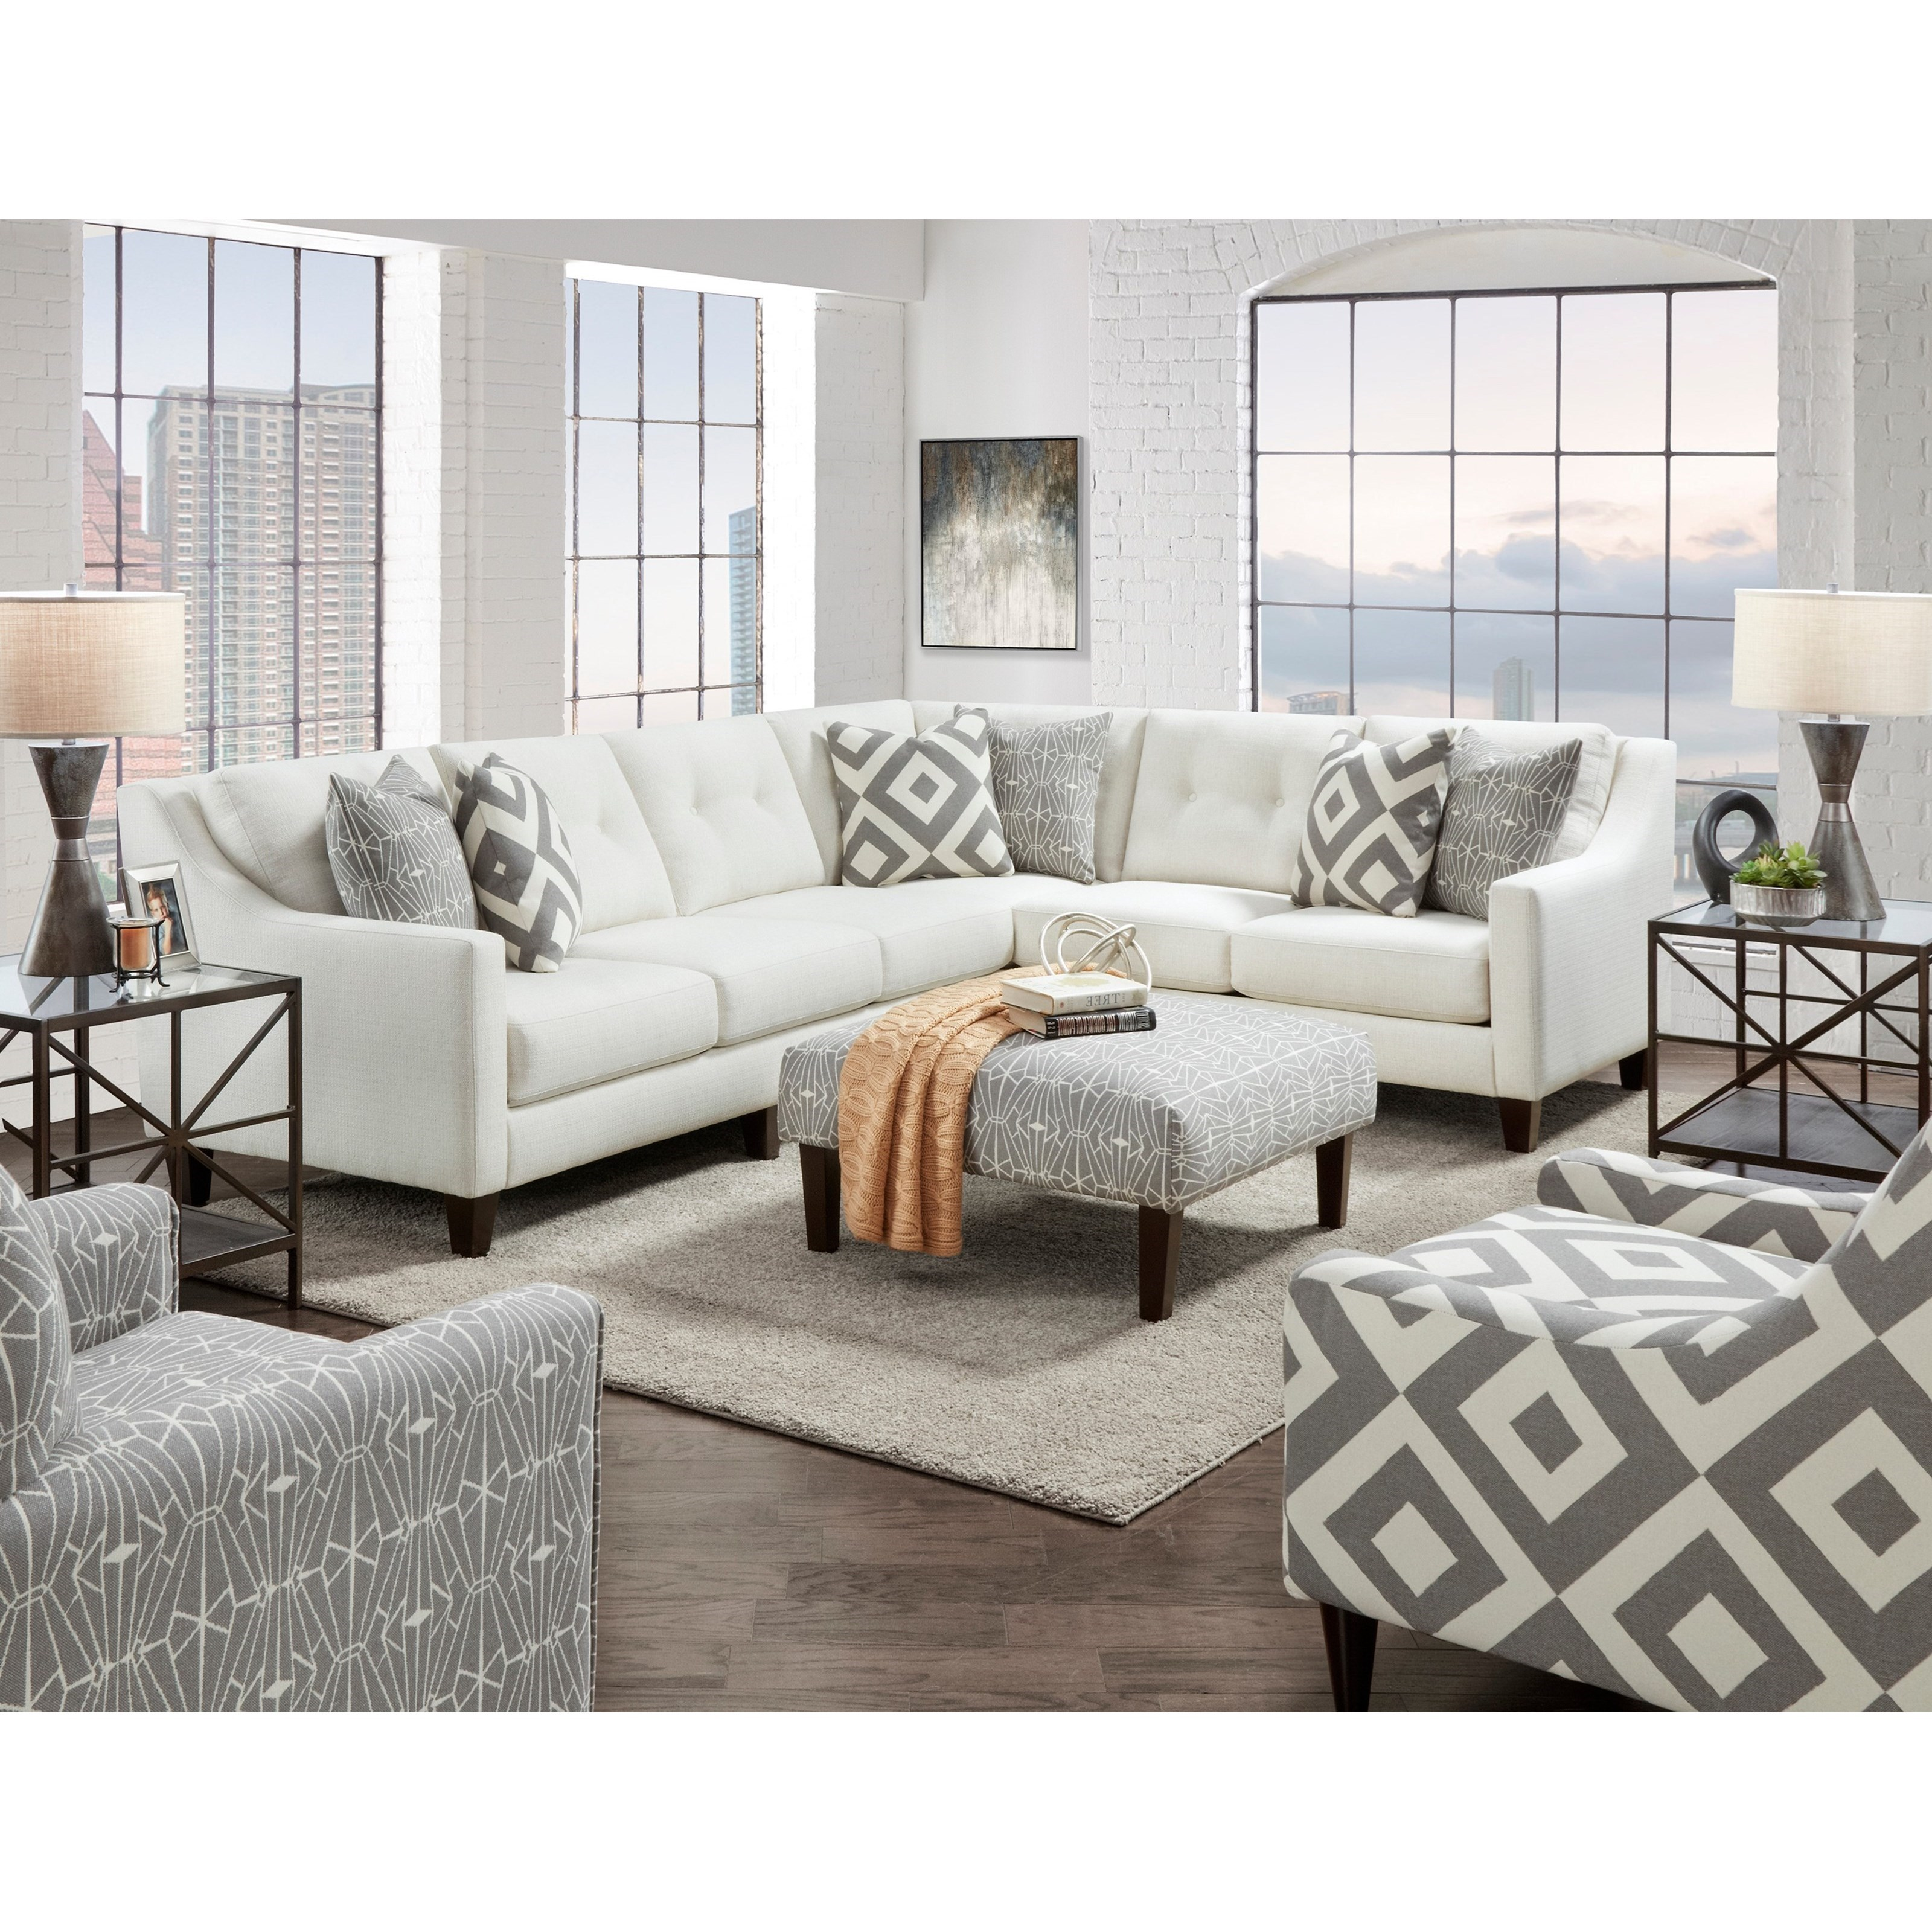 3280 Living Room Group by Fusion Furniture at Wilcox Furniture